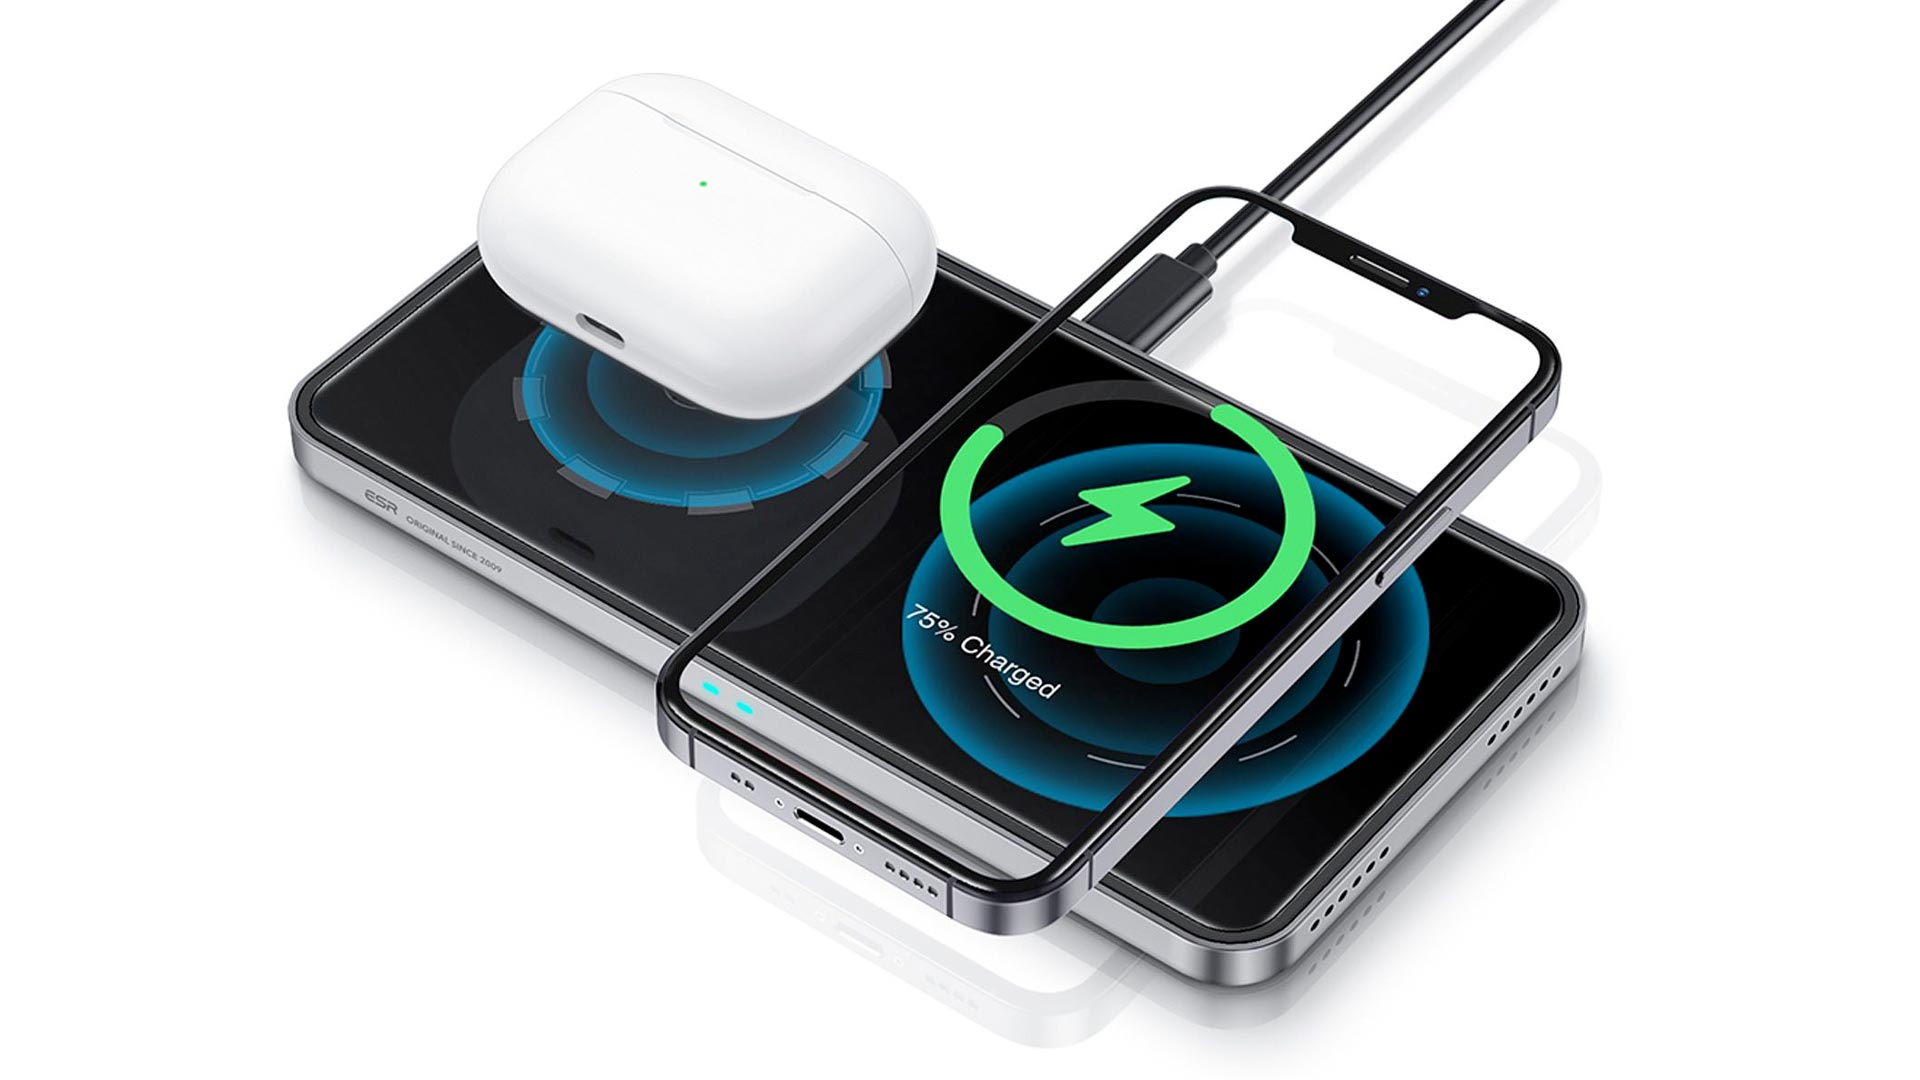 esr halolock 2-in-1 charger